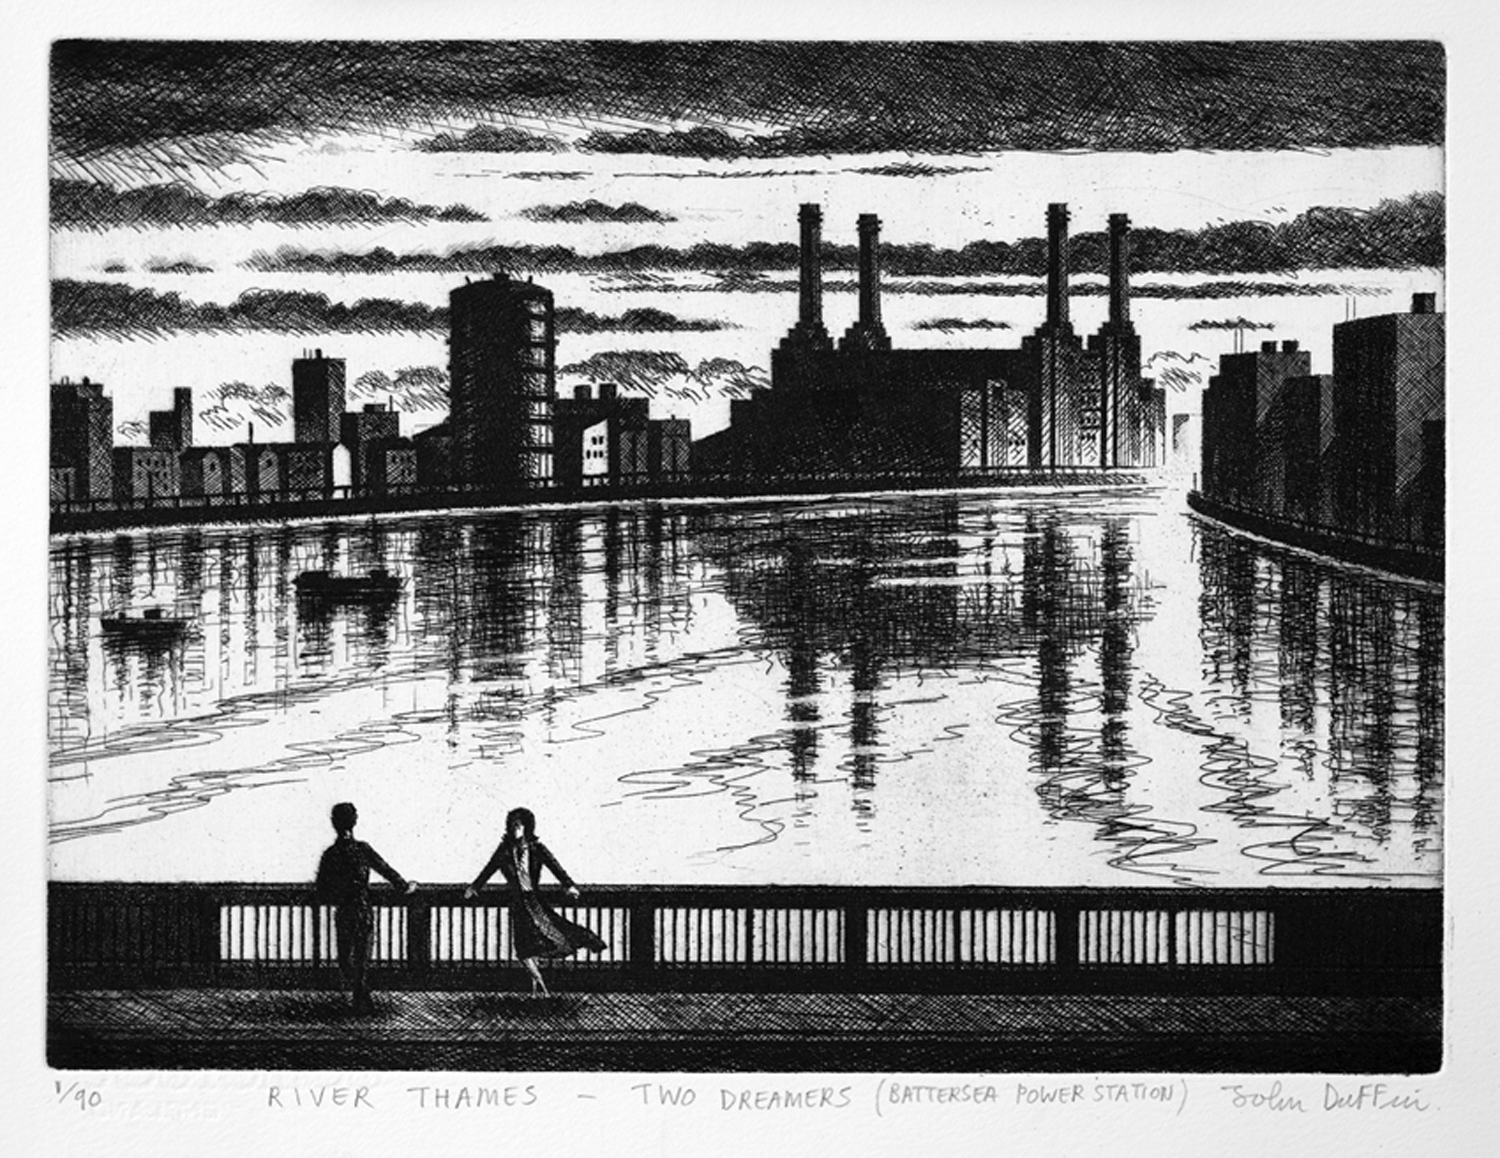 River Thames - Two Dreamers (Battersea Power Station)   etching   21 x 30cm  £195 (unframed)